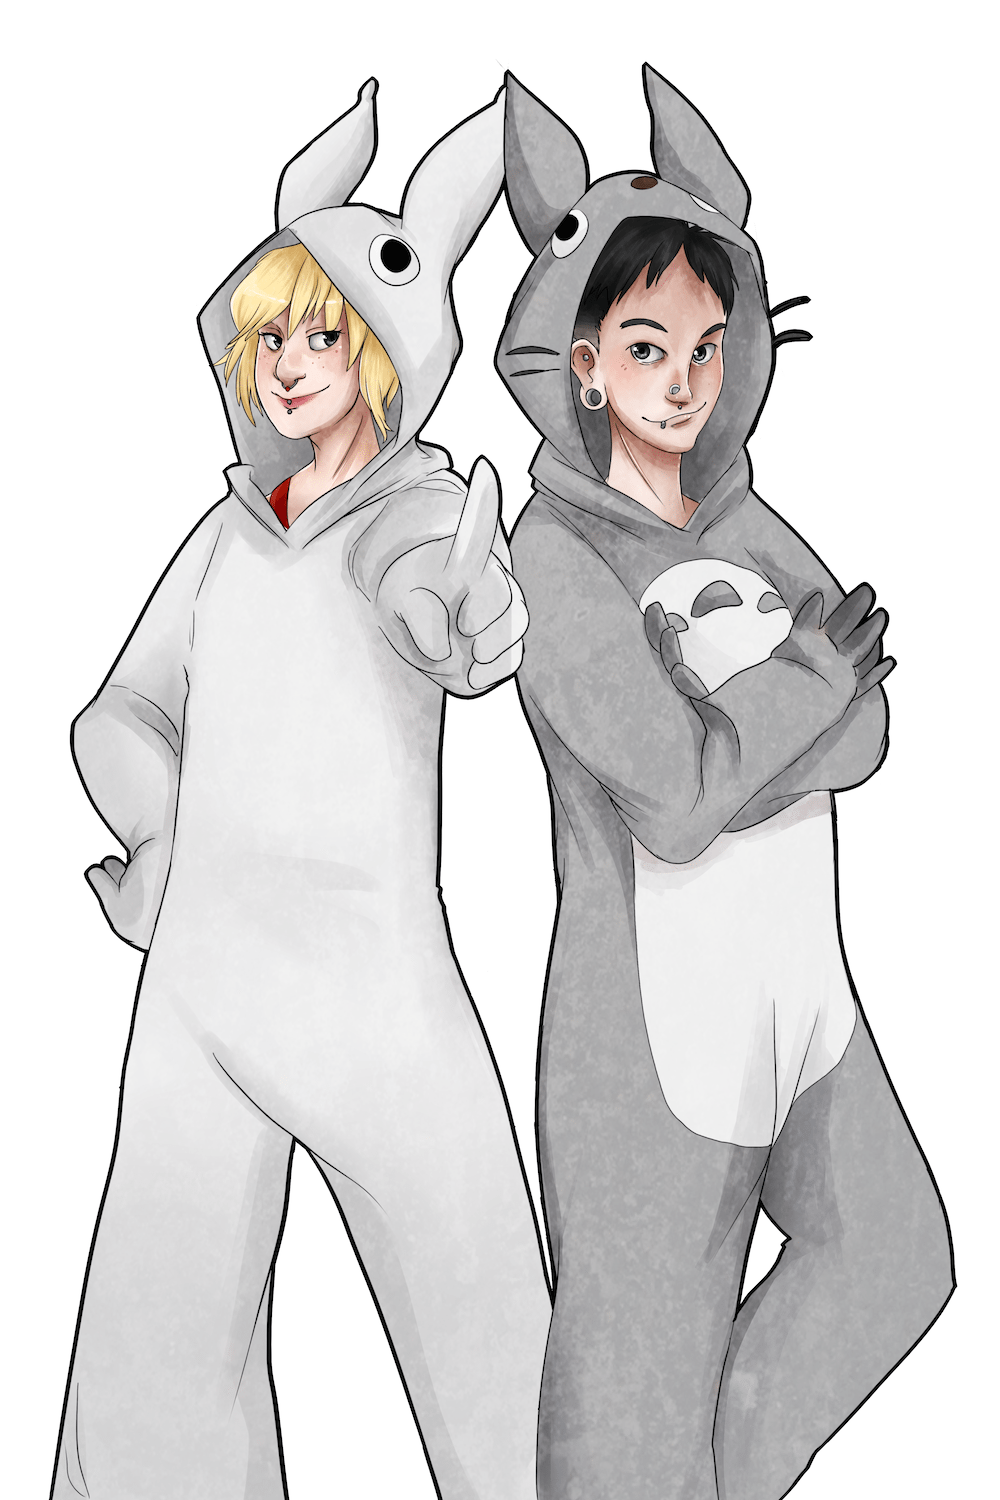 Portrait of The Kigurumi Gang by AruRmz via ArtCorgi v4